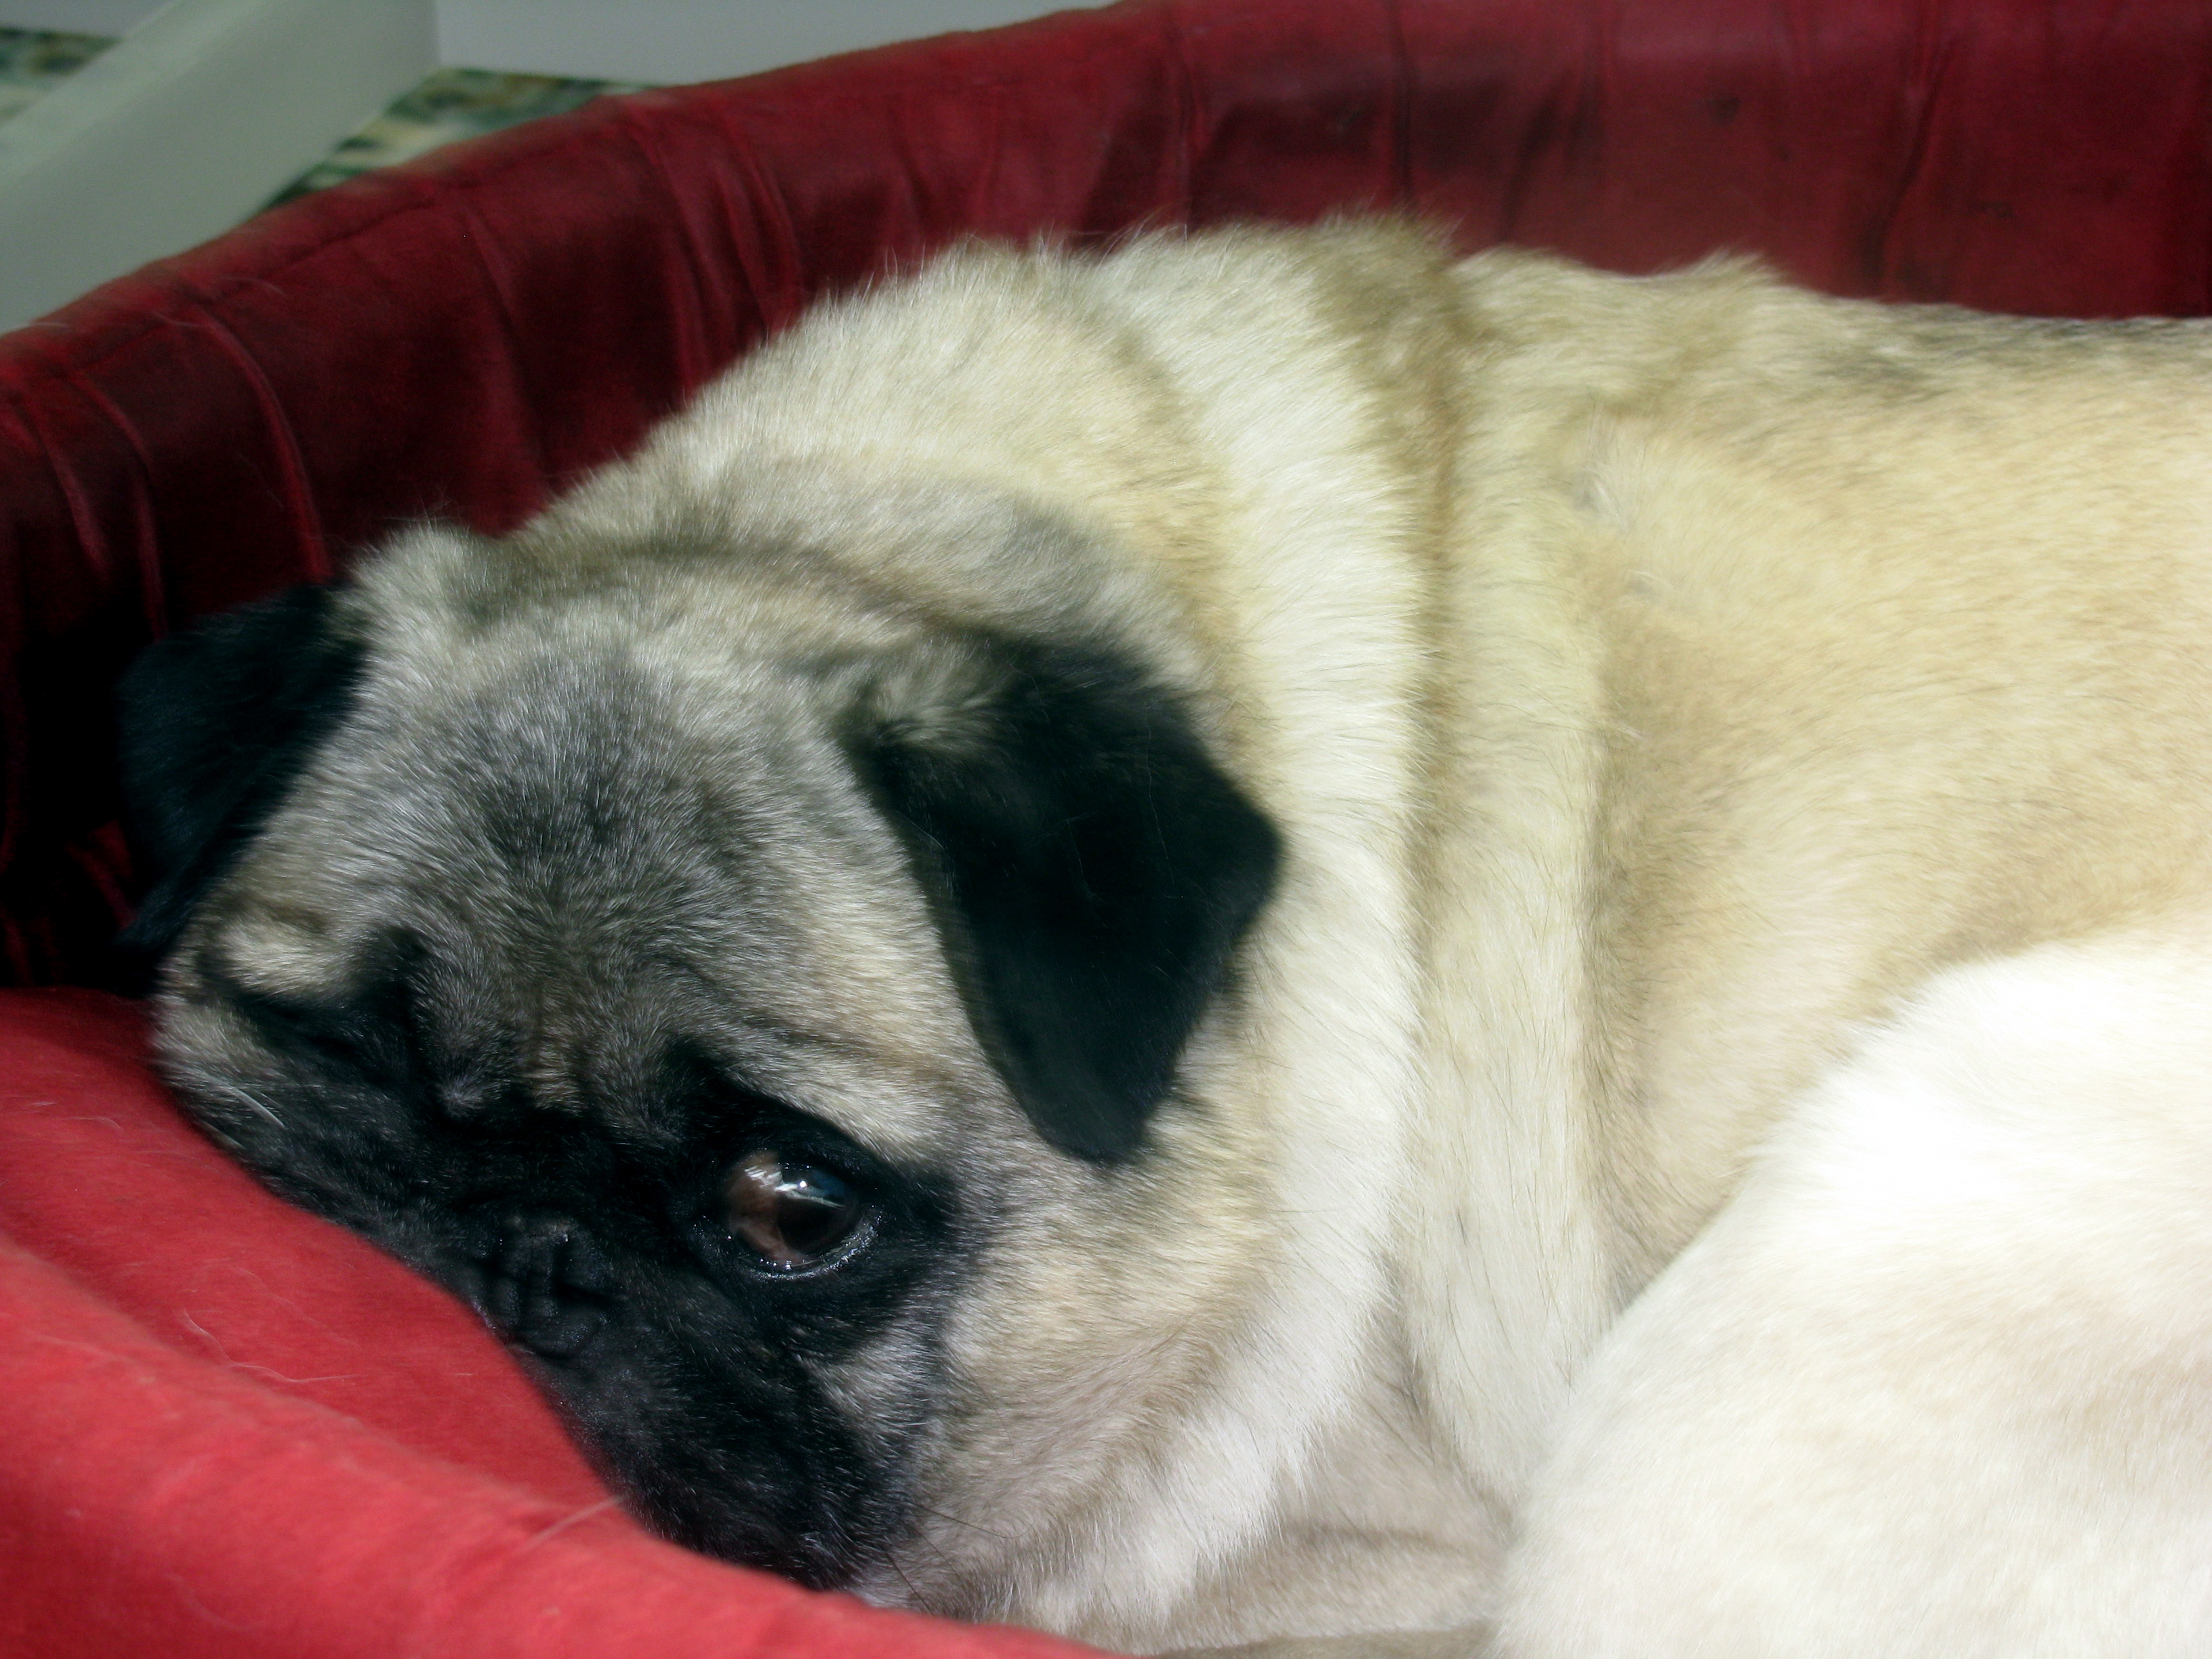 A portrait of a pug in pain as he struggles to escape into sleep.